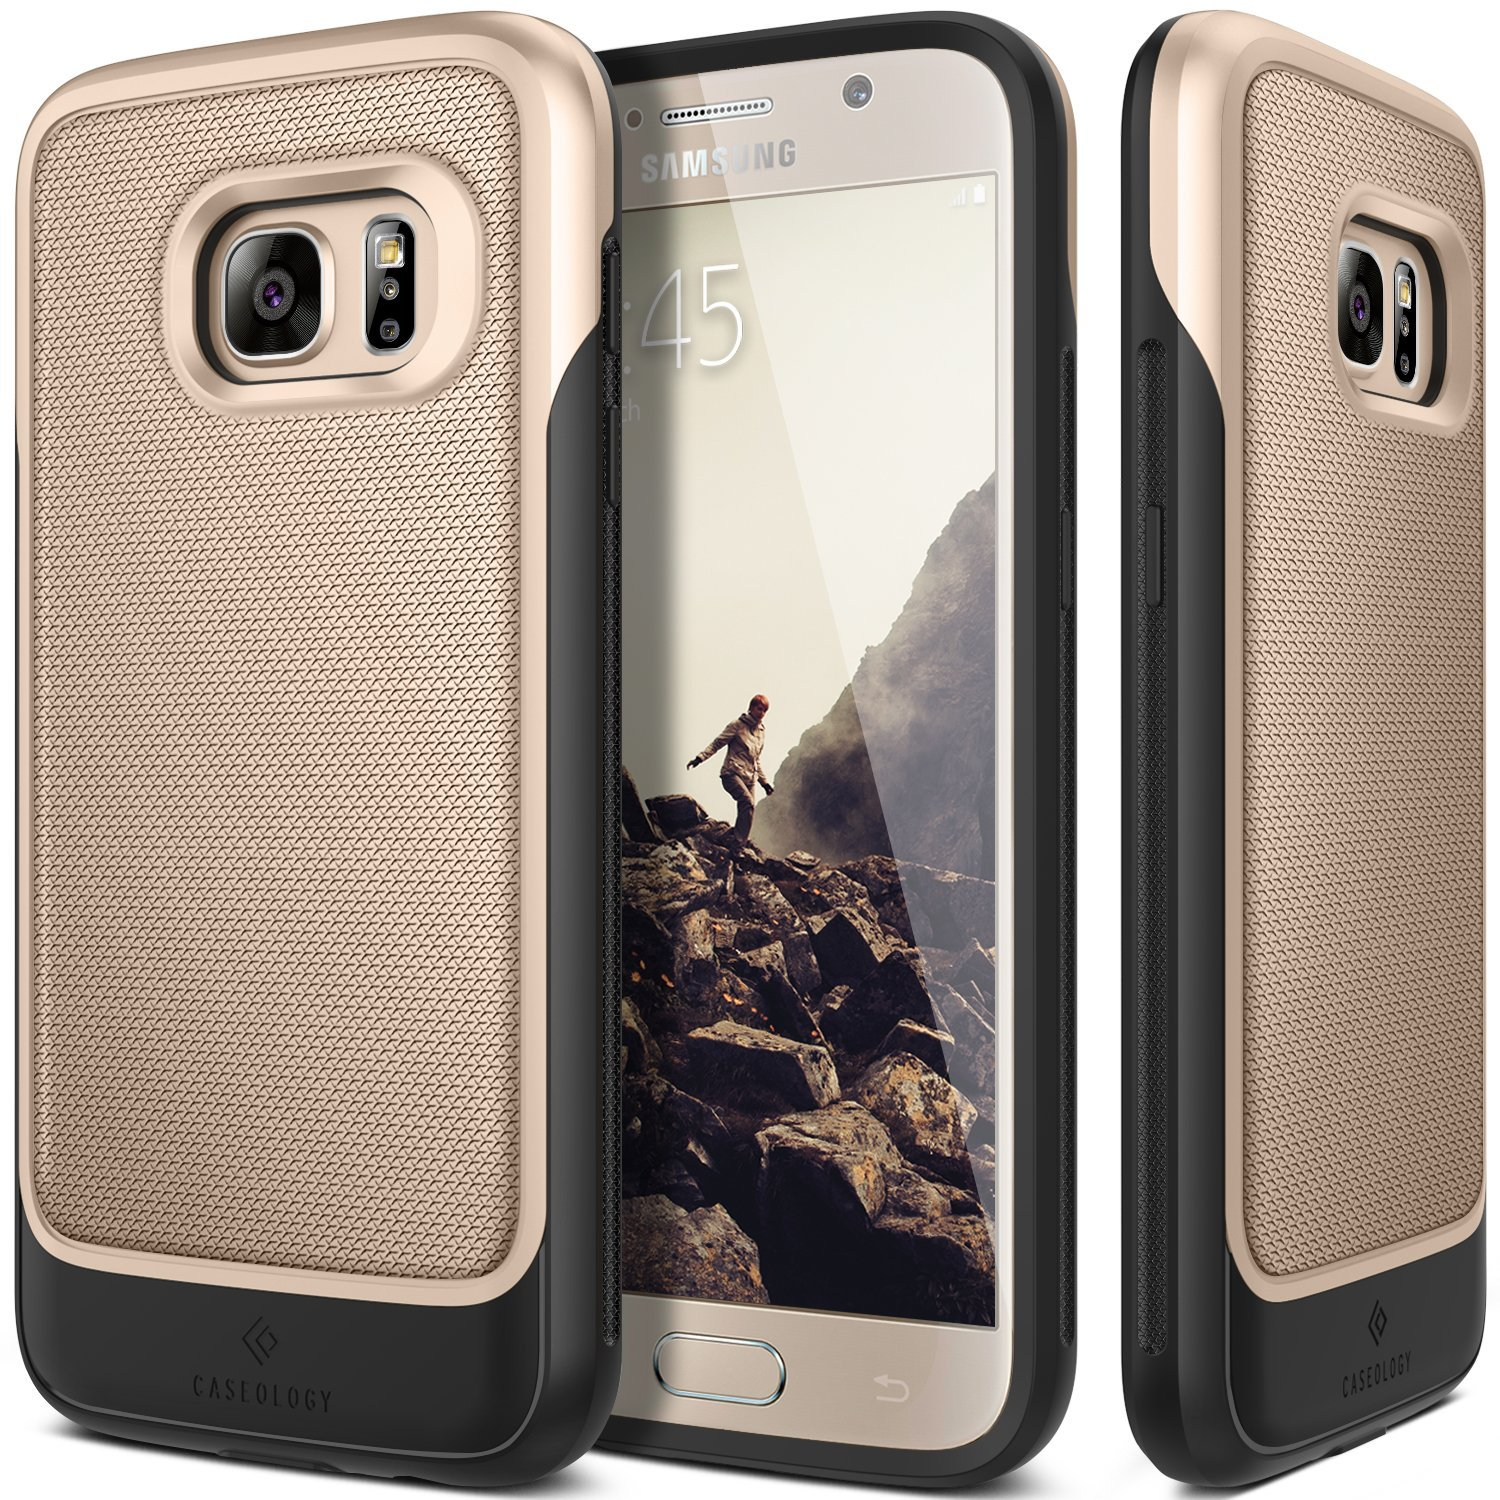 huge selection of 2c6b4 defe9 Samsung Galaxy S7 Accessories: Cases and Covers